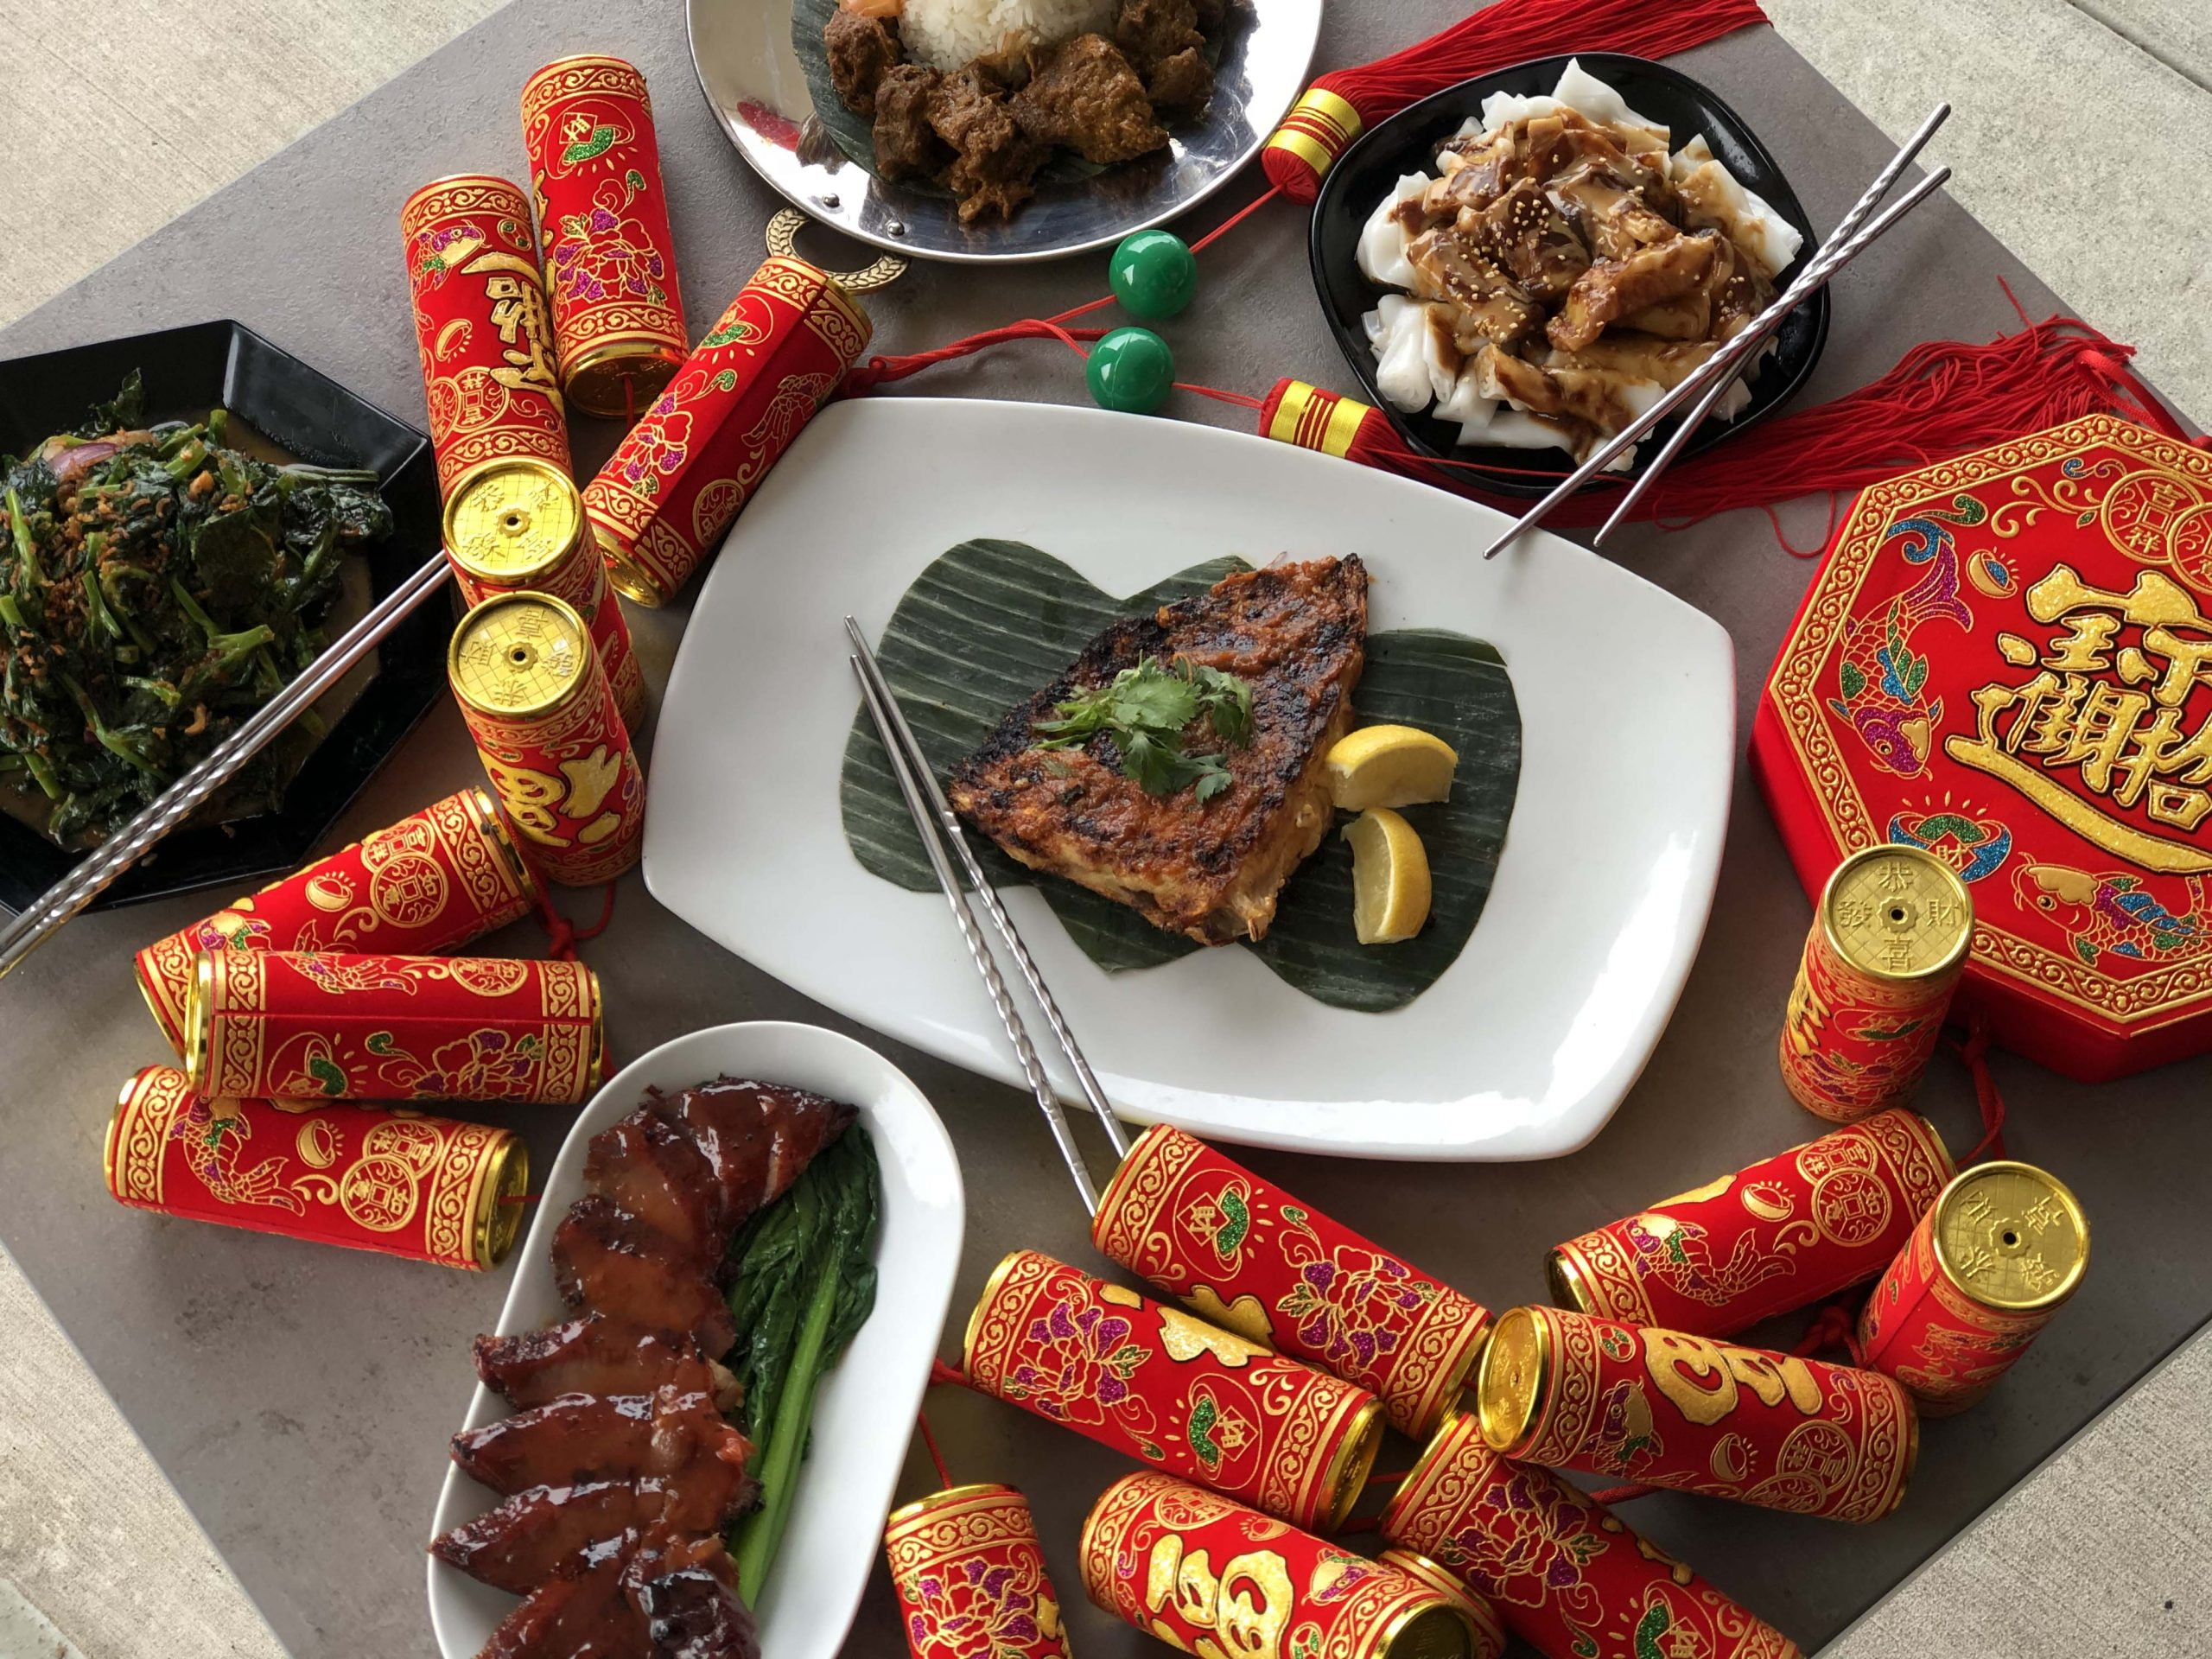 Overhead view of Malaysian food with Chinese decorations